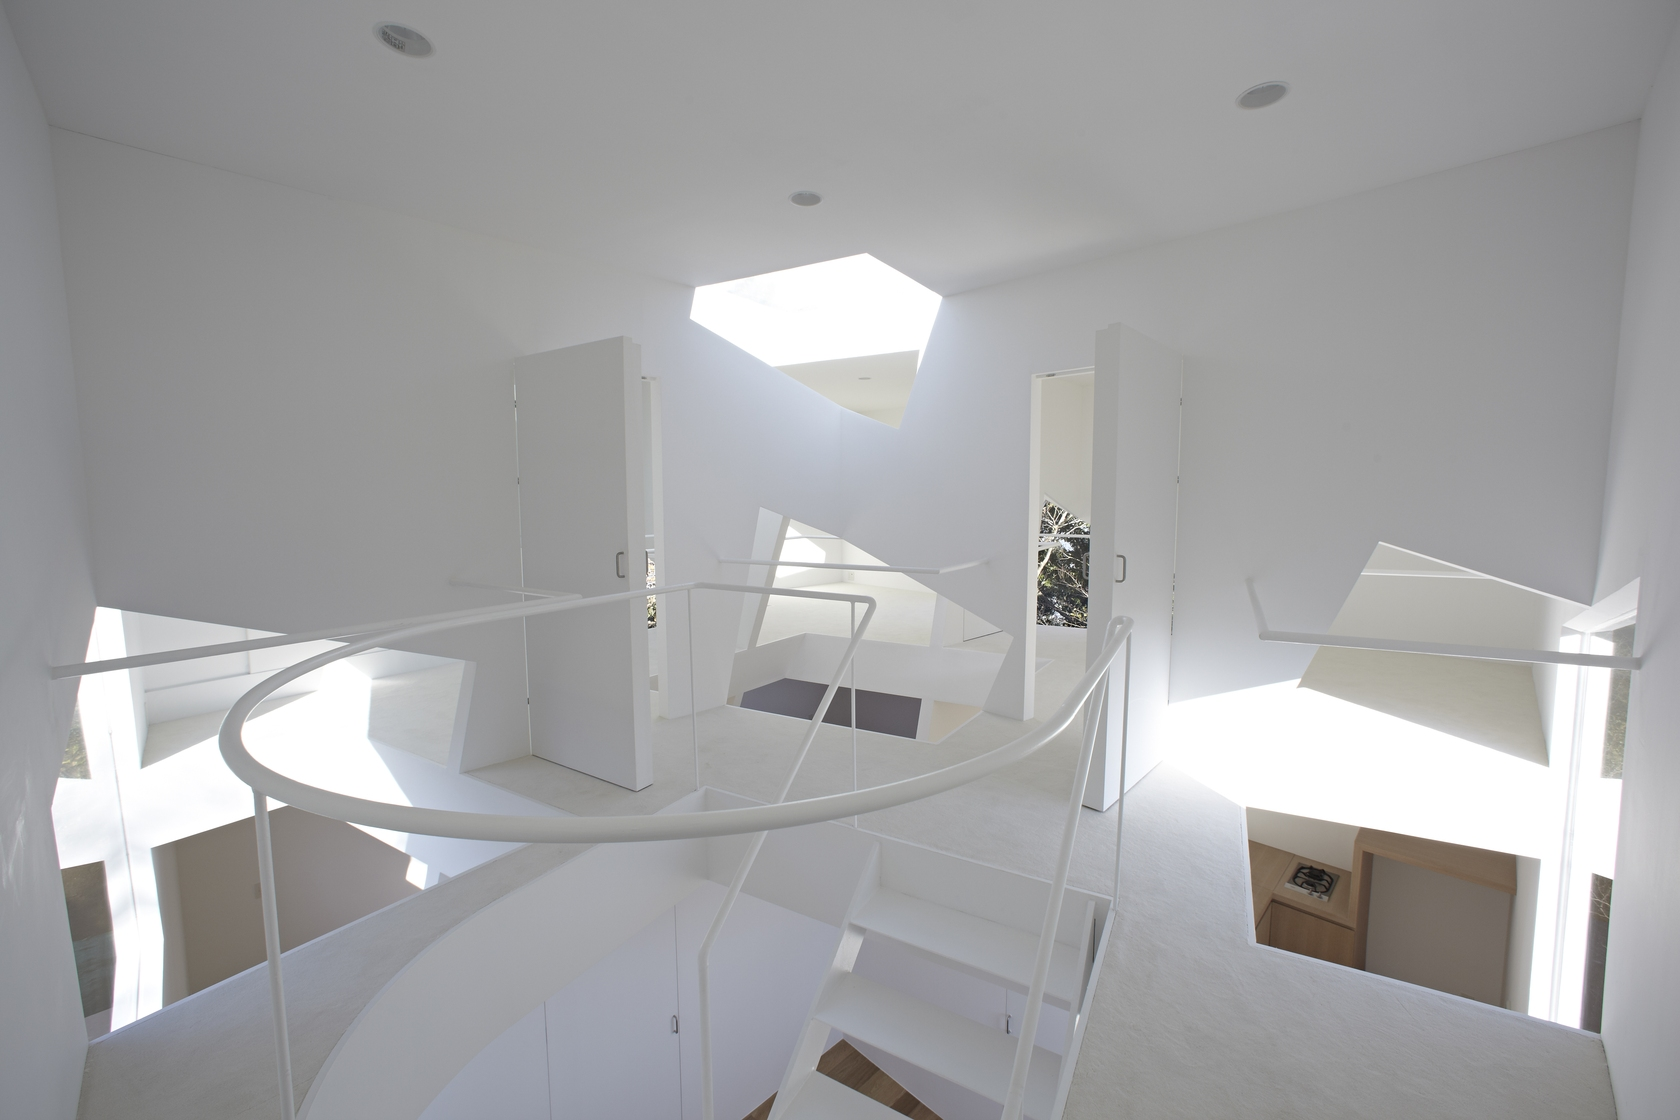 White Staircase - Minimalist home in the mountains